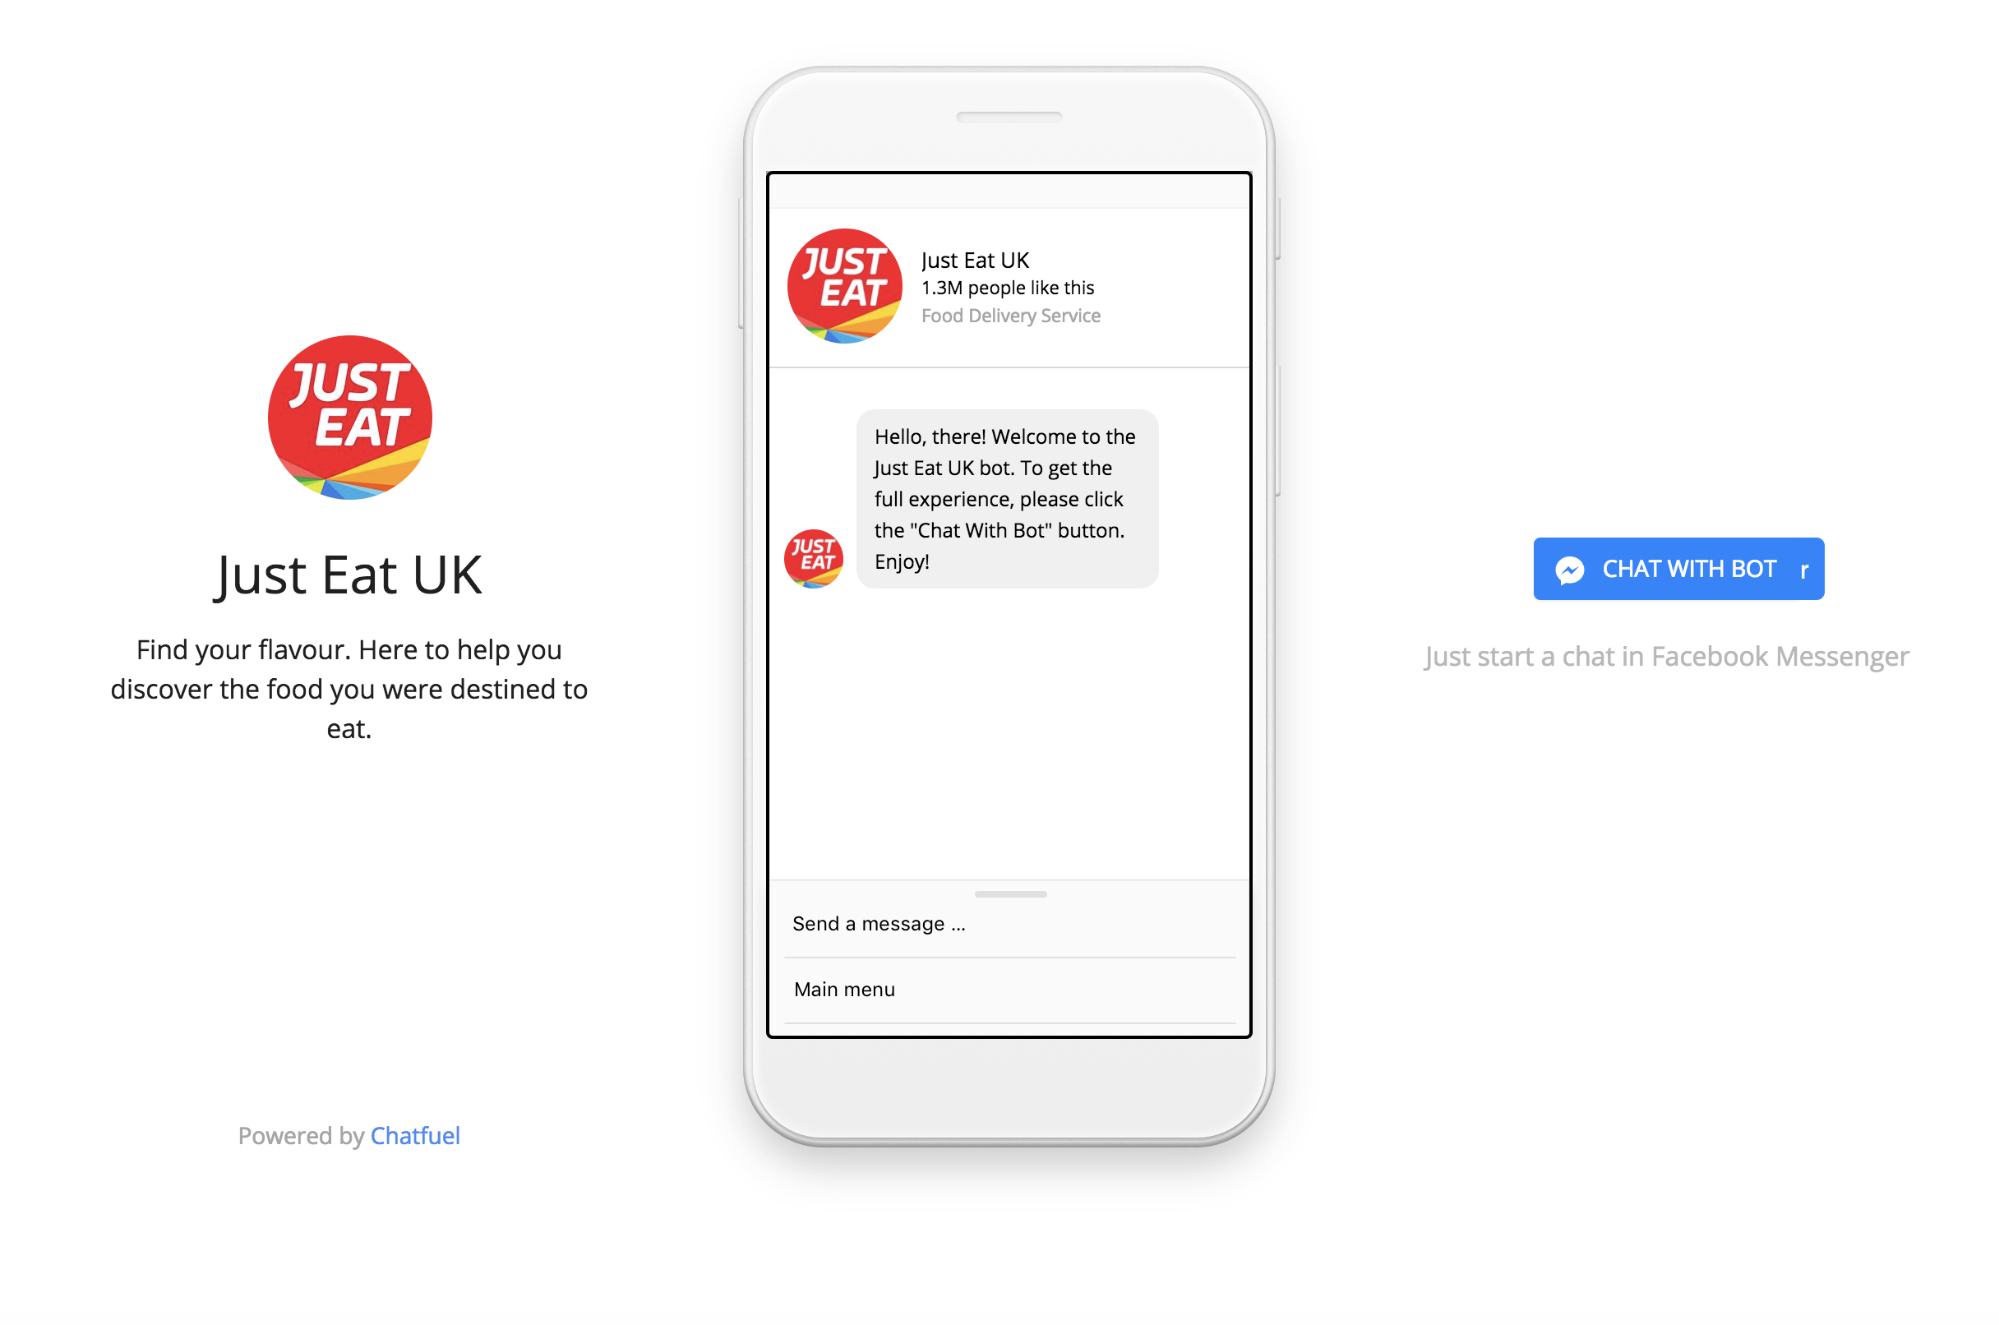 Screenshot showing a messenger conversation with Just Eat UK